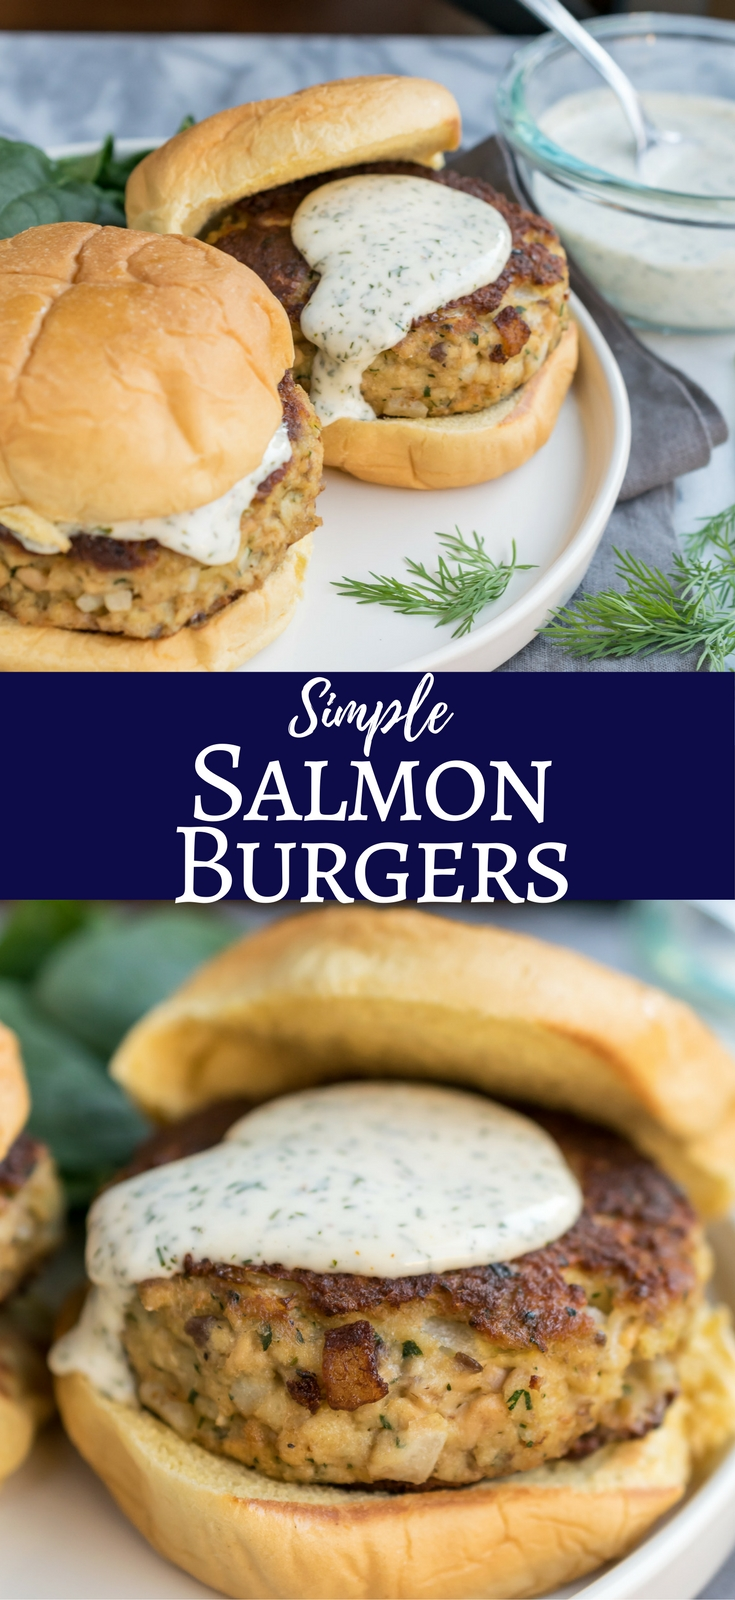 Salmon Burgers with Lemon and Dill Mayo - Recipe by Cooks ...